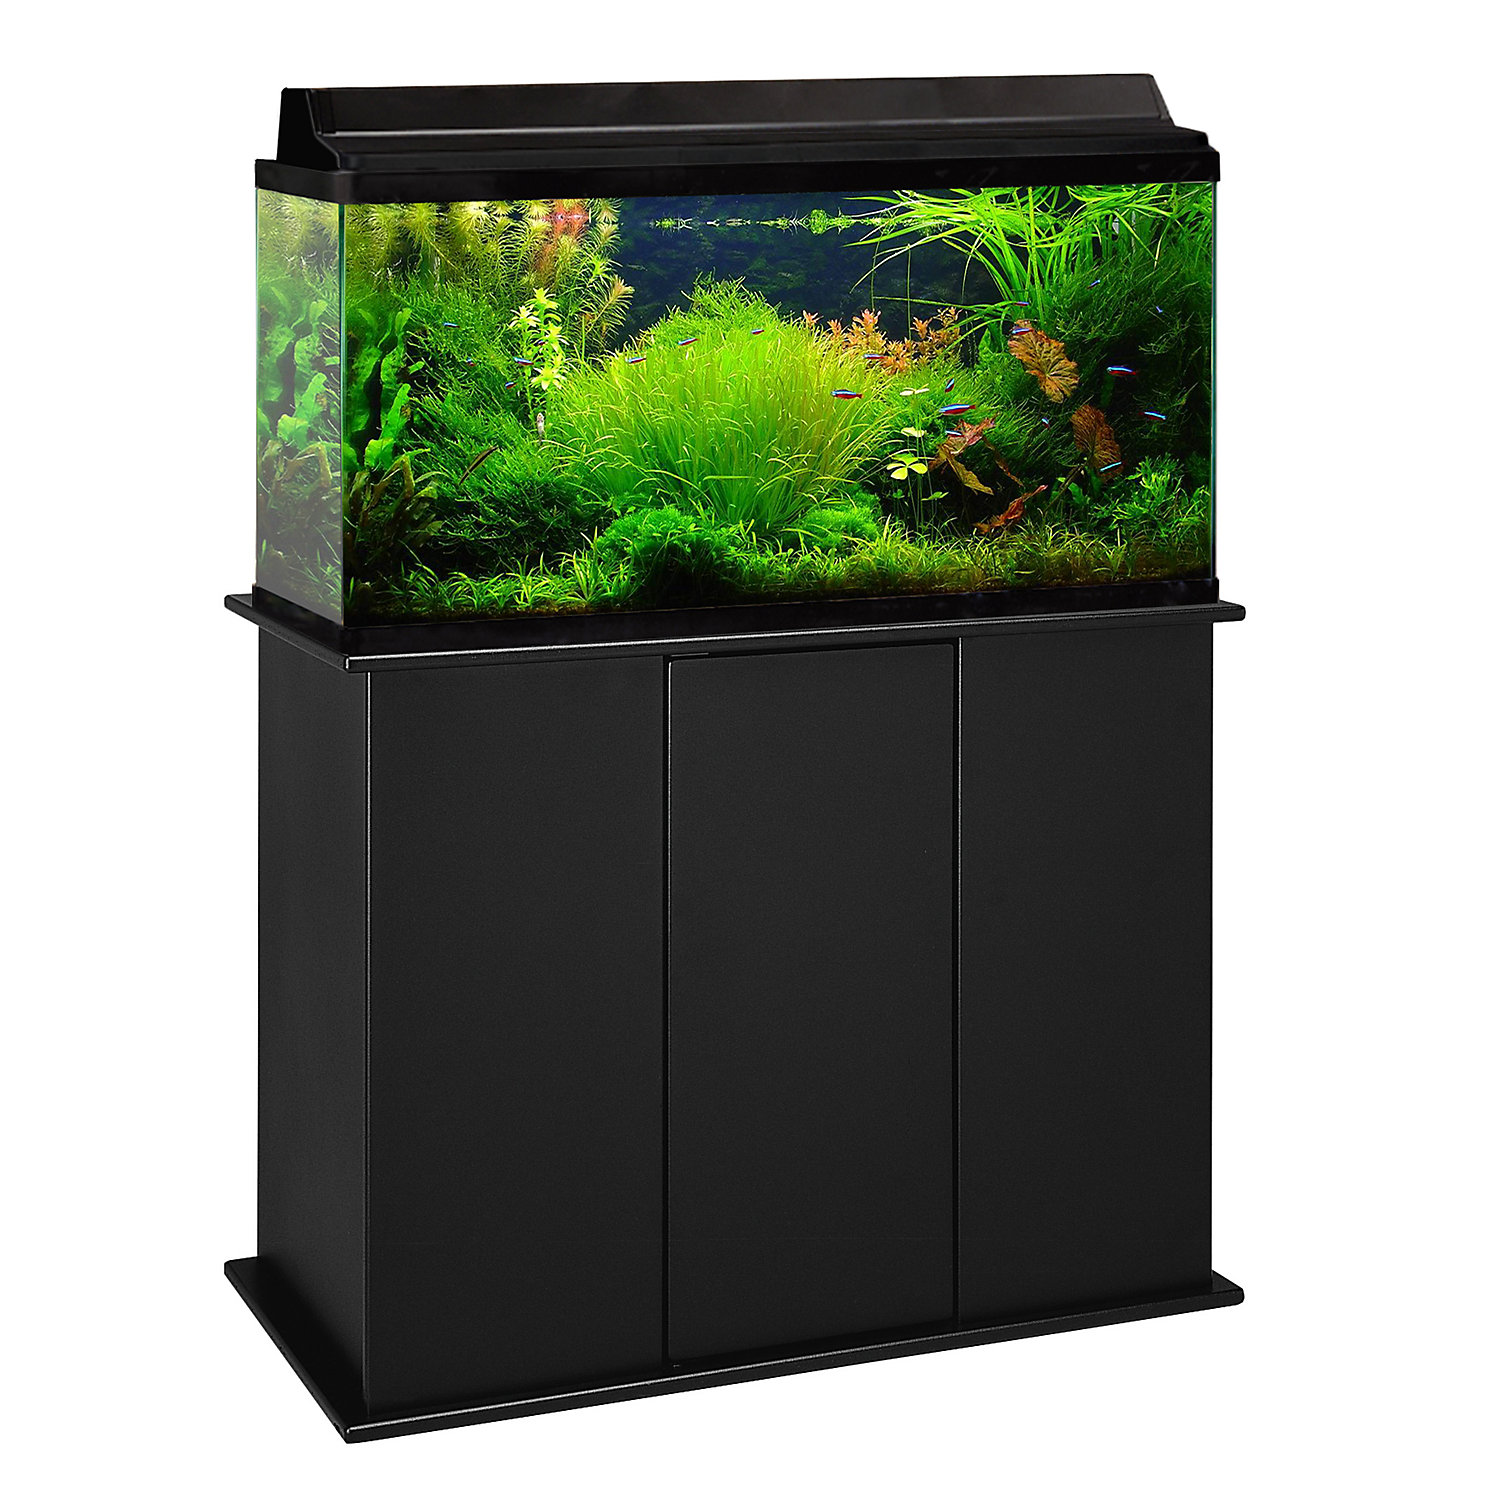 Aquatic Fundamentals 50/65 Gallon Upright Aquarium Stand